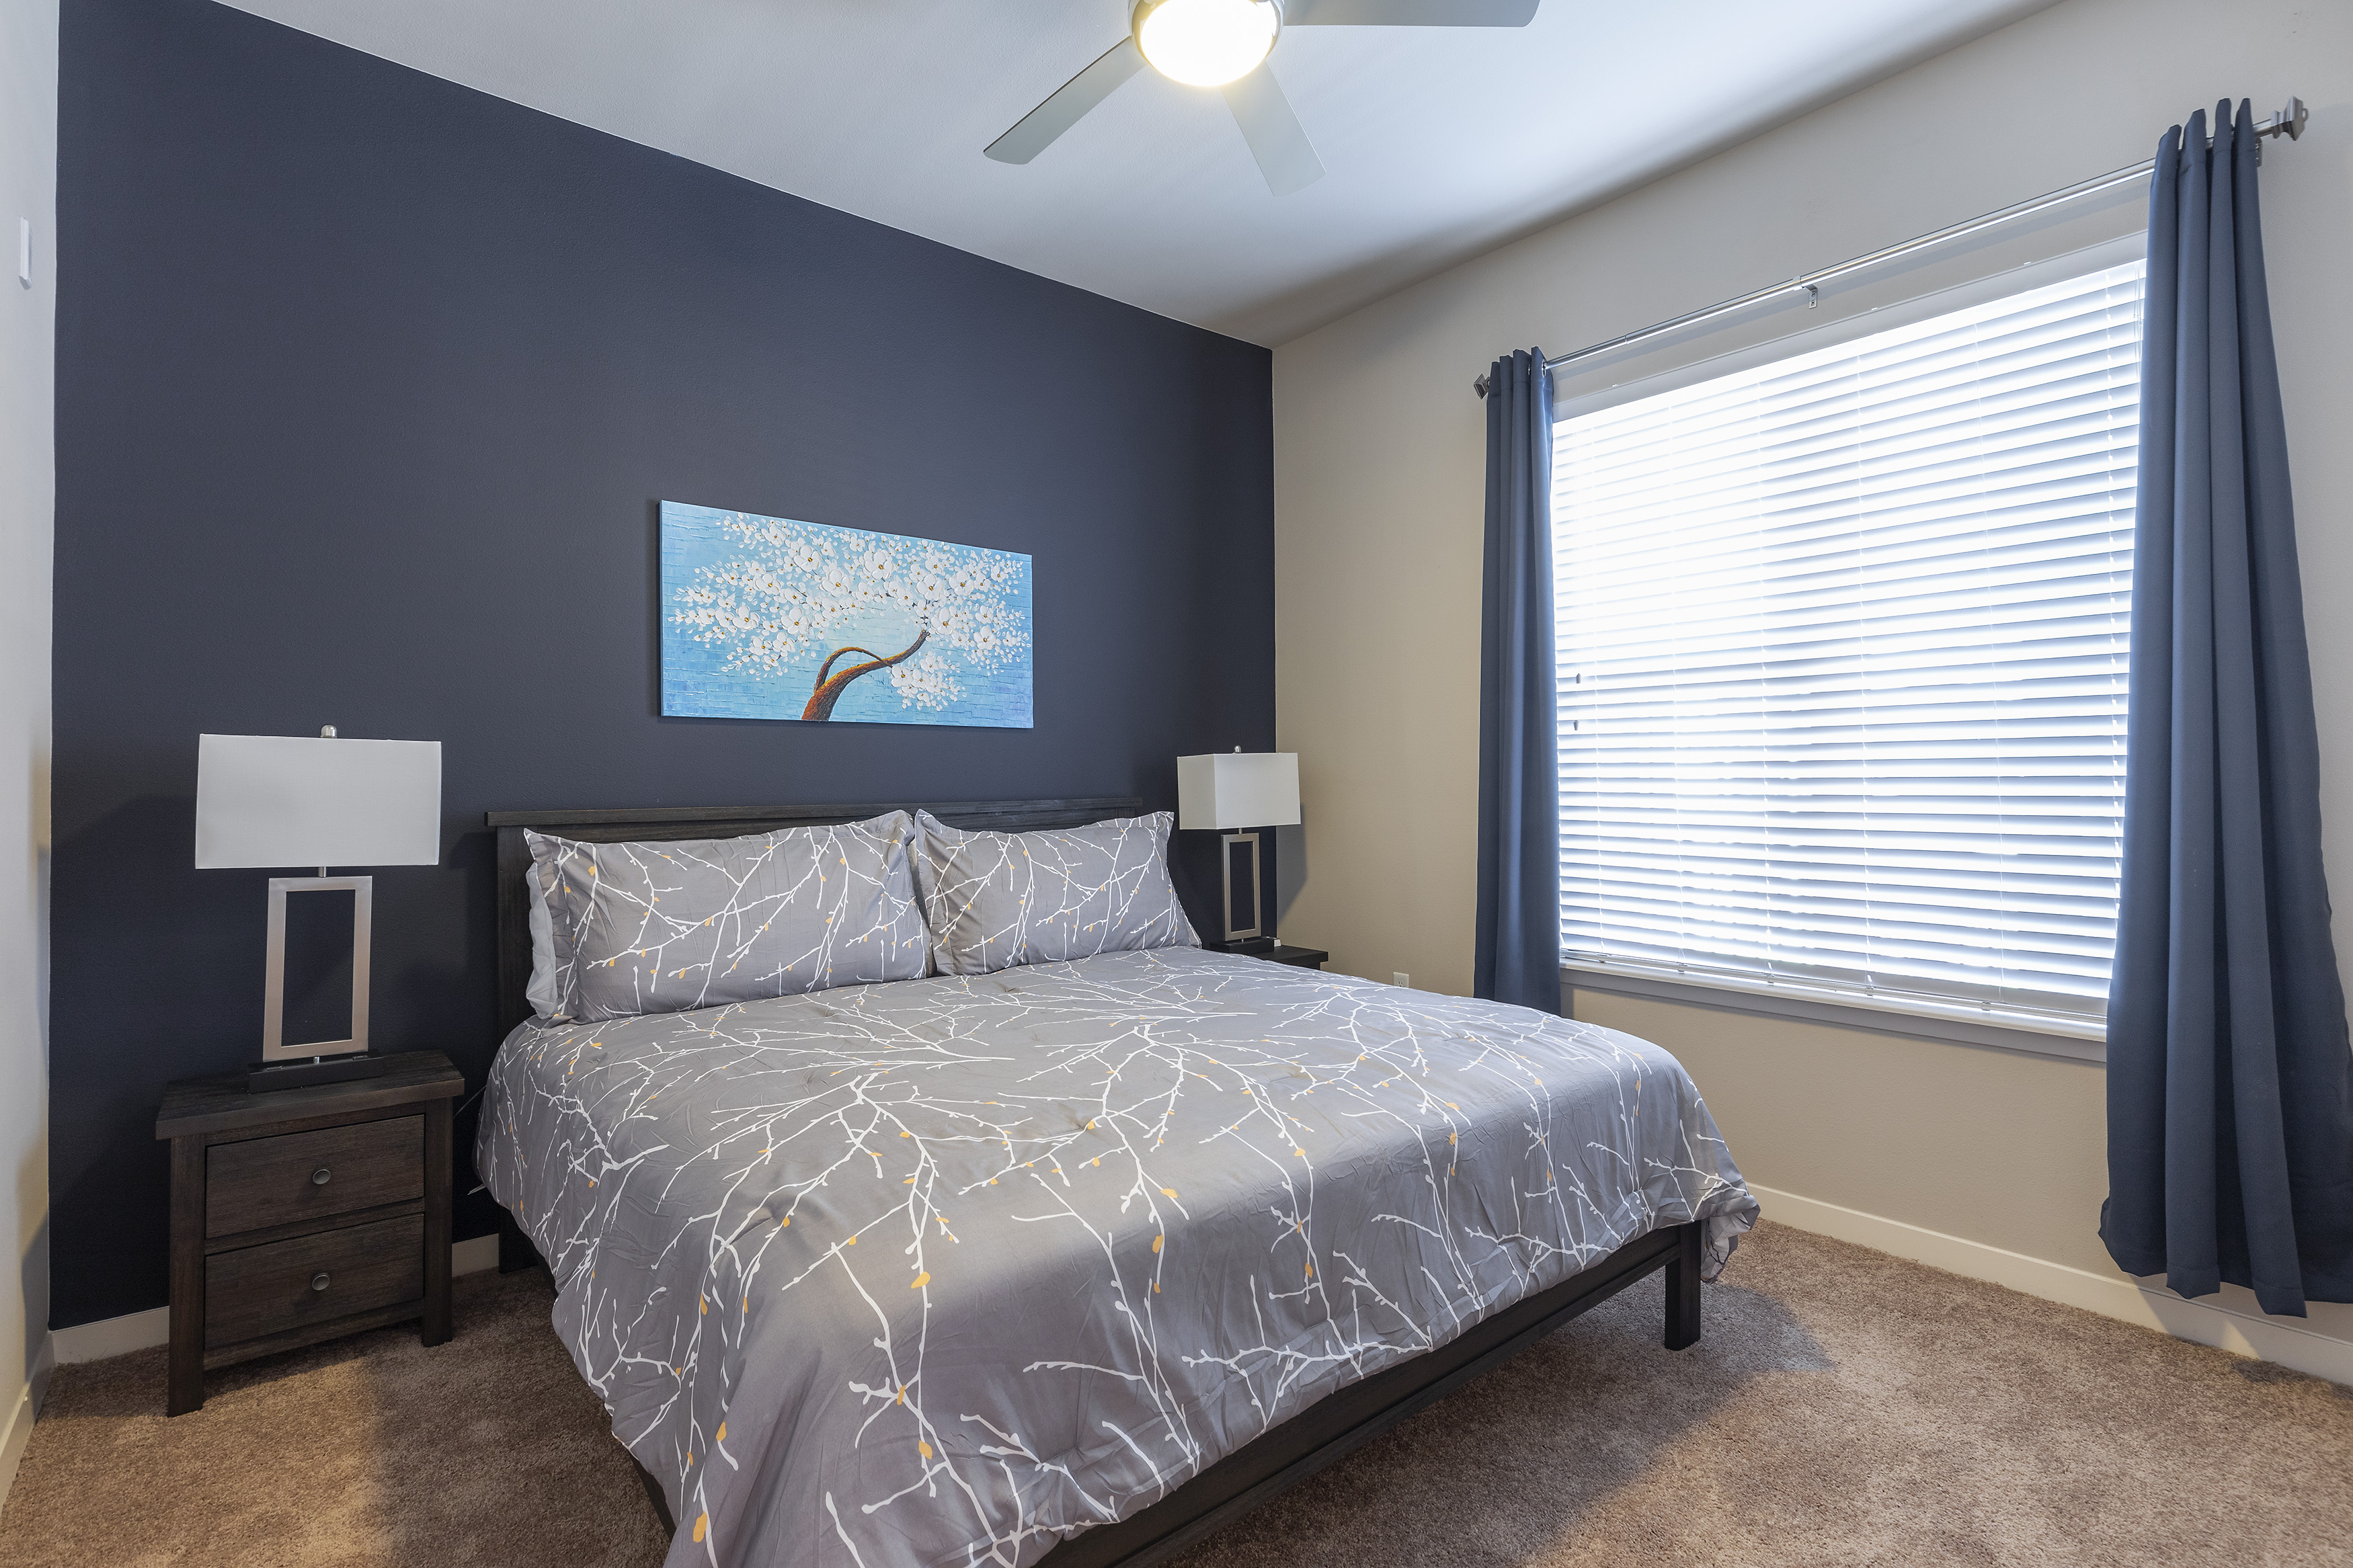 Apartment LUXURIOUS KING SIZED BED MED CENTER FULLY EQUIPPED CONDO photo 21440880